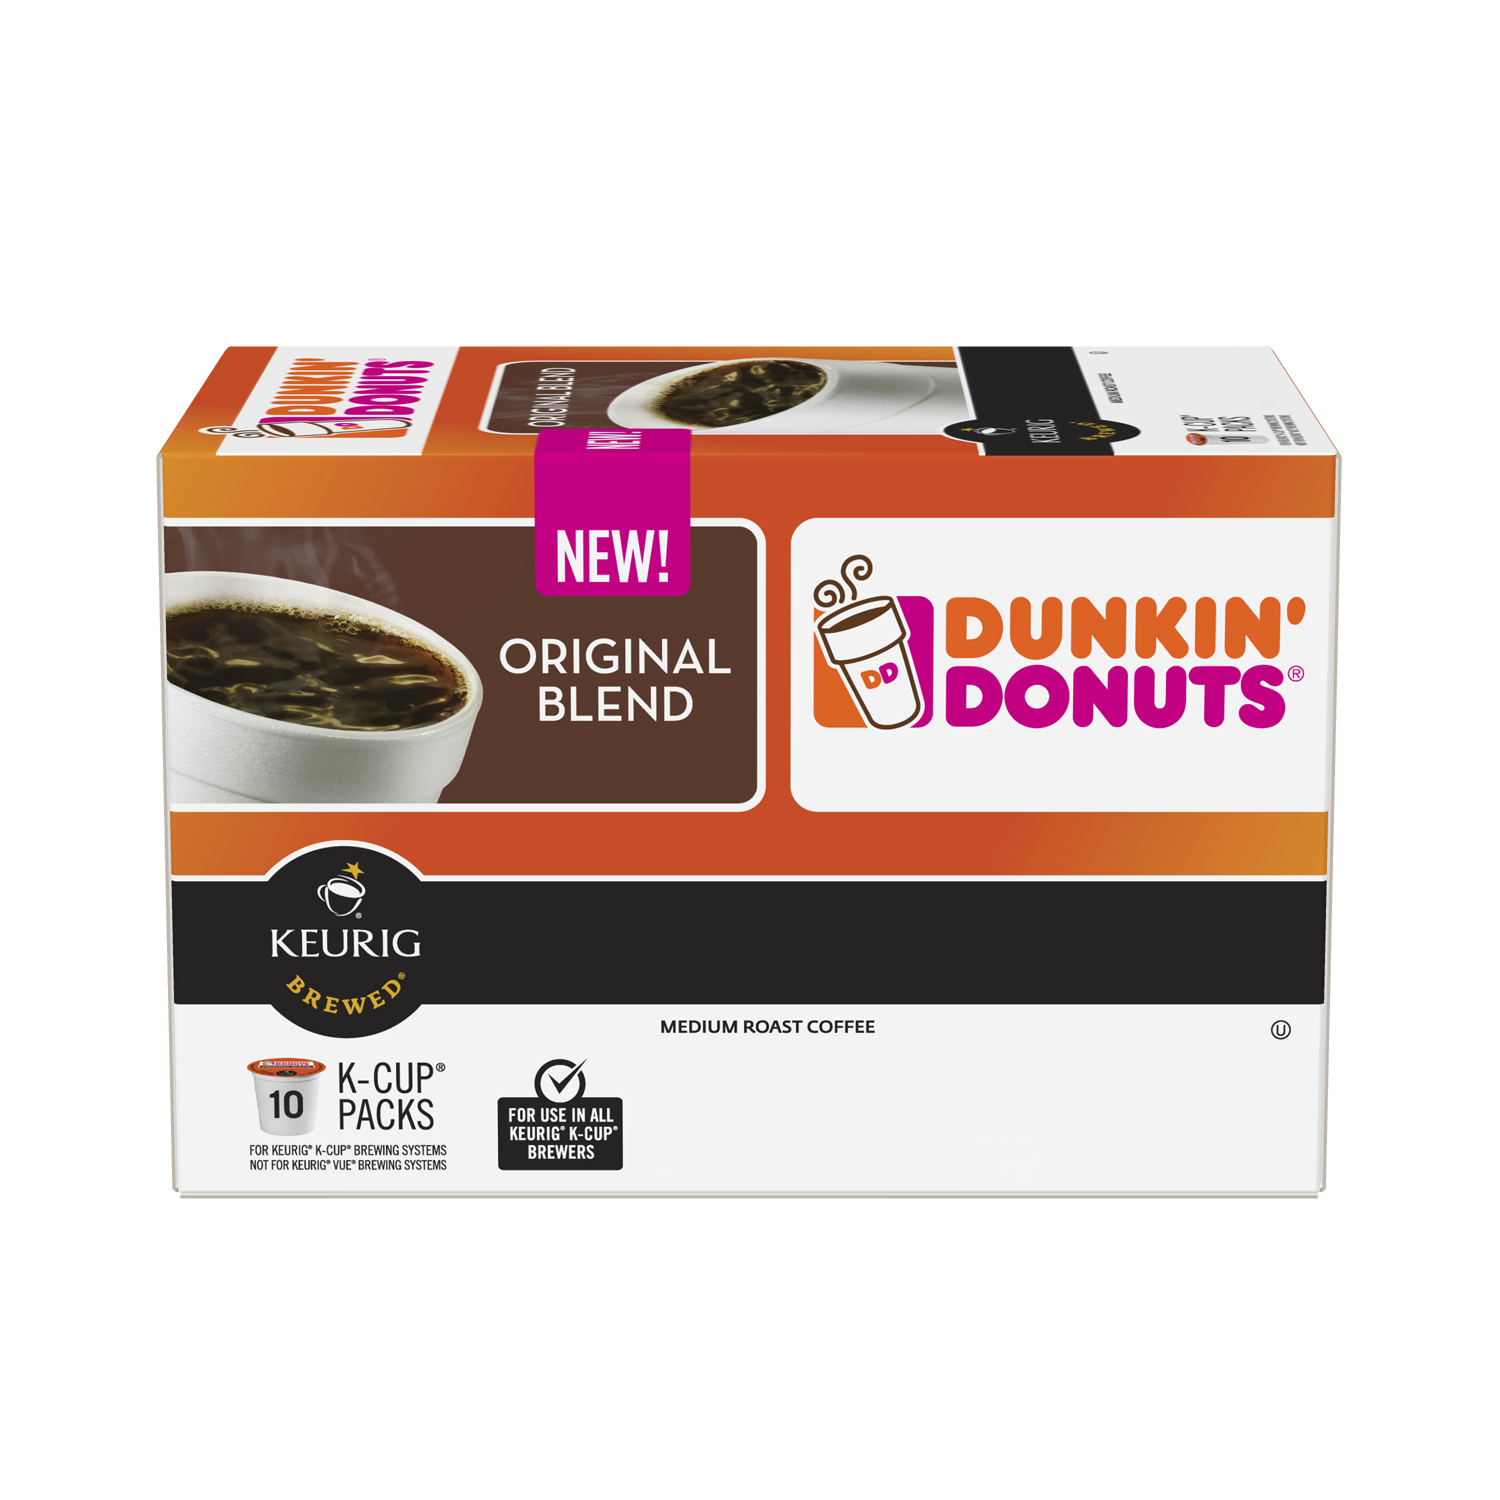 Dunkin' Donuts Shareholders Want Company To Look Into K-Cup Waste